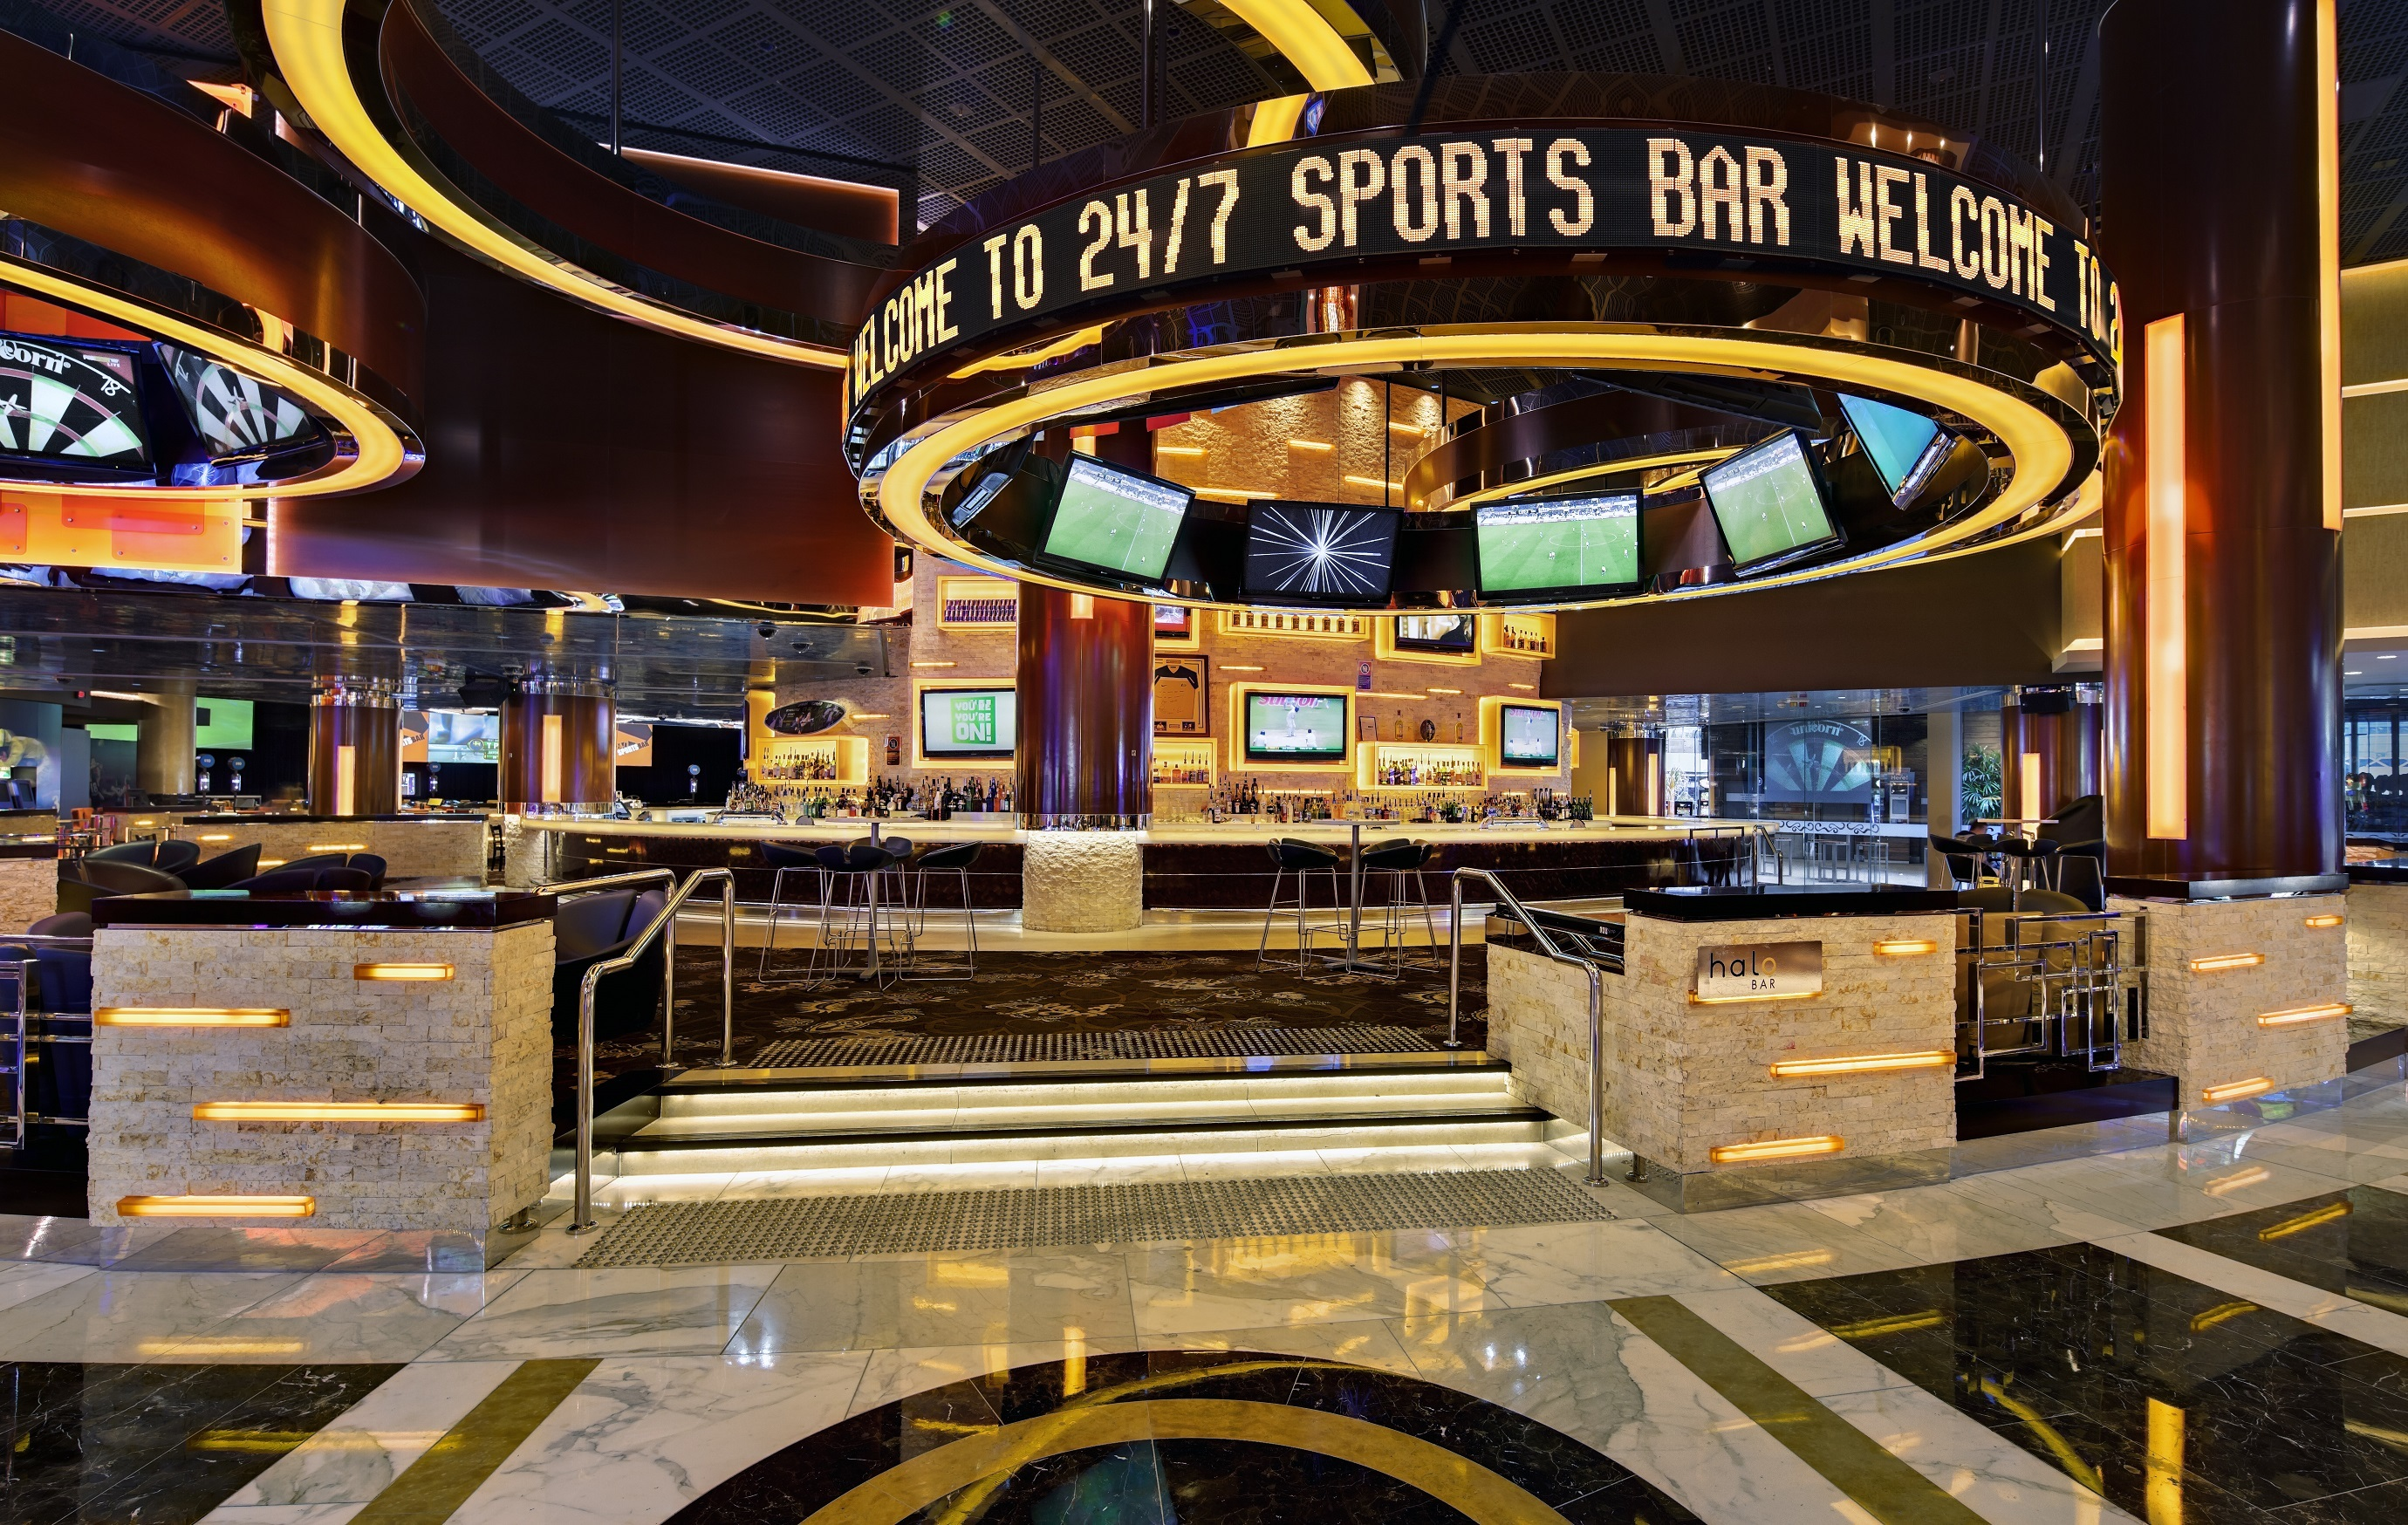 A bar with many TV screens